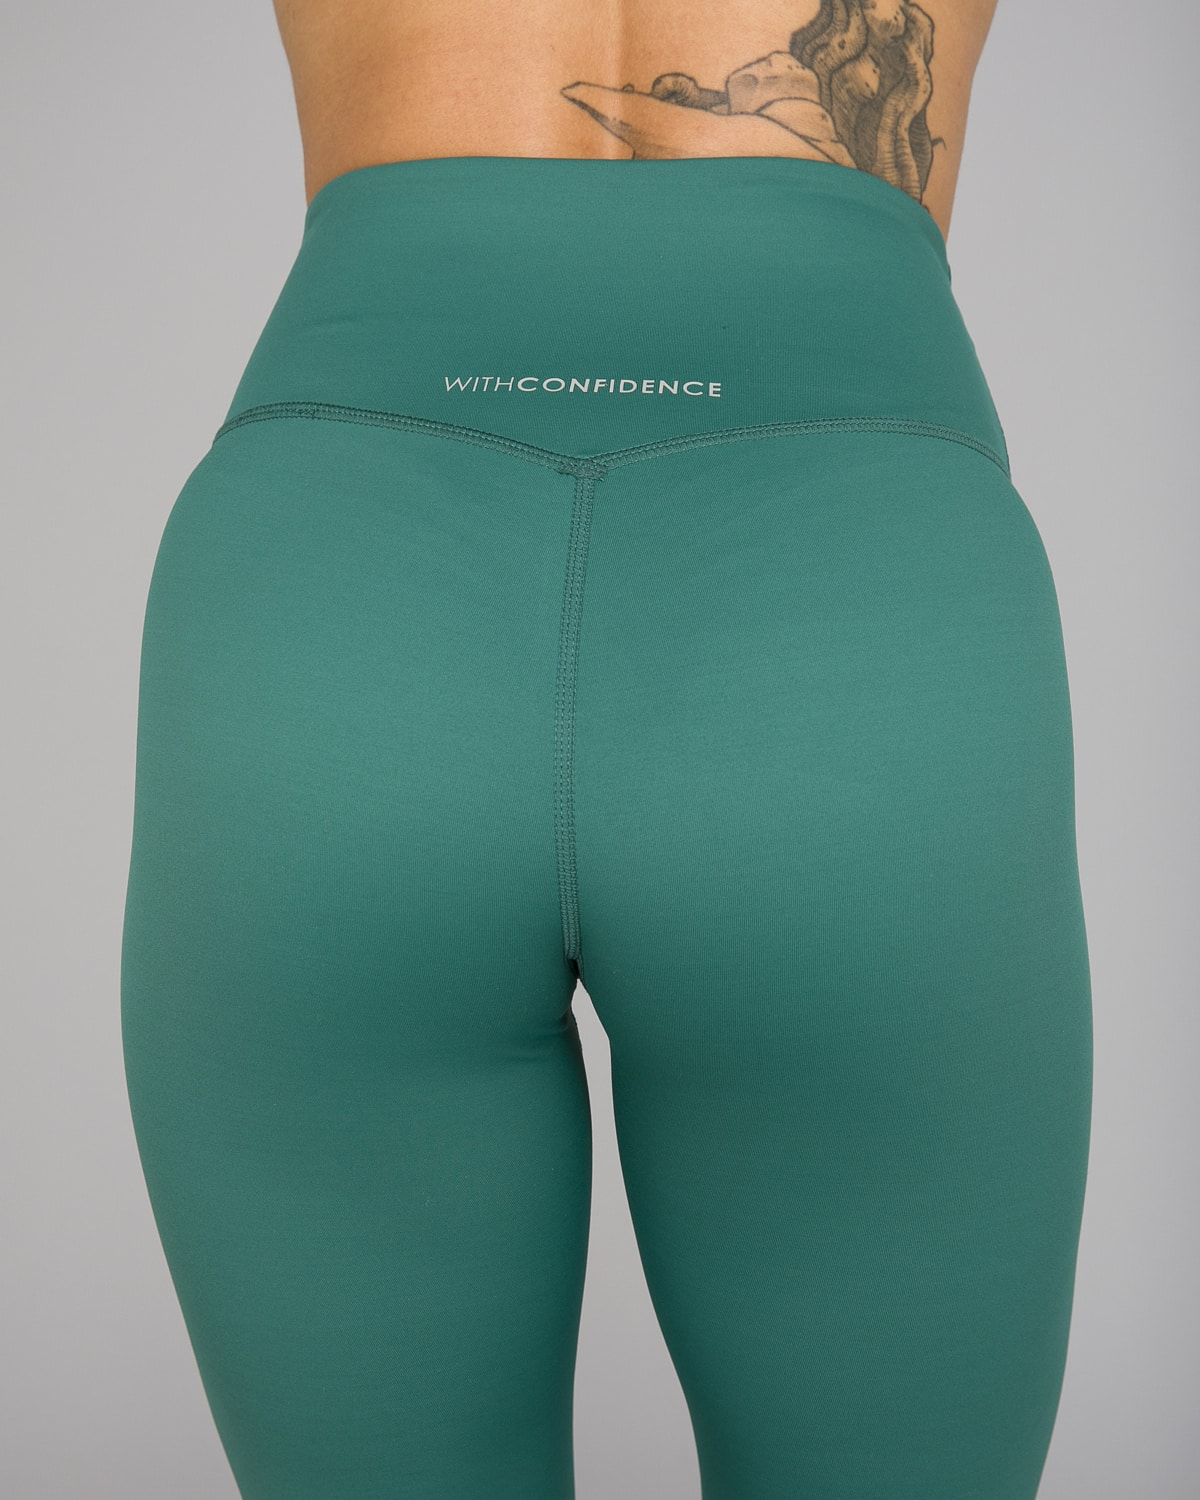 Workout Empire – With Confidence Shape Leggings – Emerald Green11